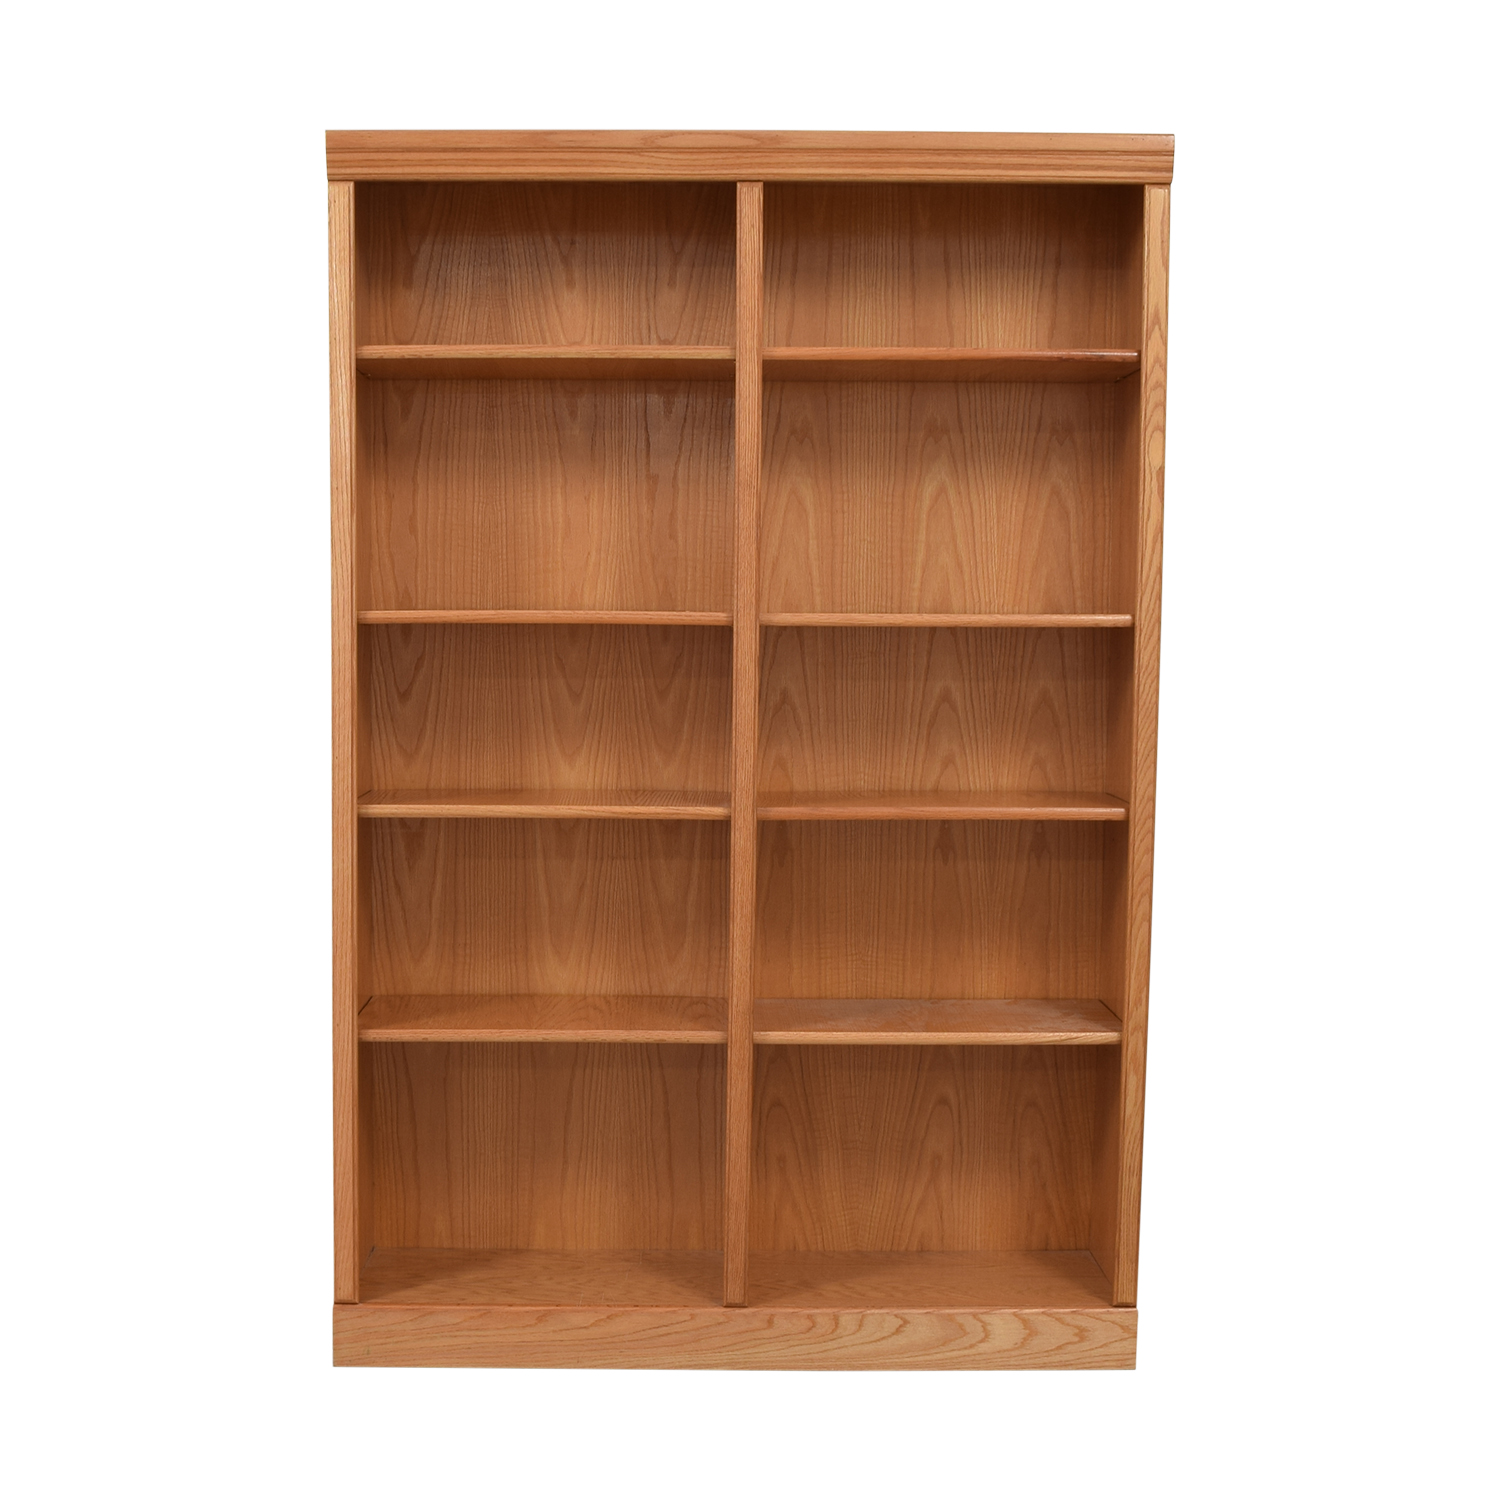 Wood Double Bookcase / Bookcases & Shelving